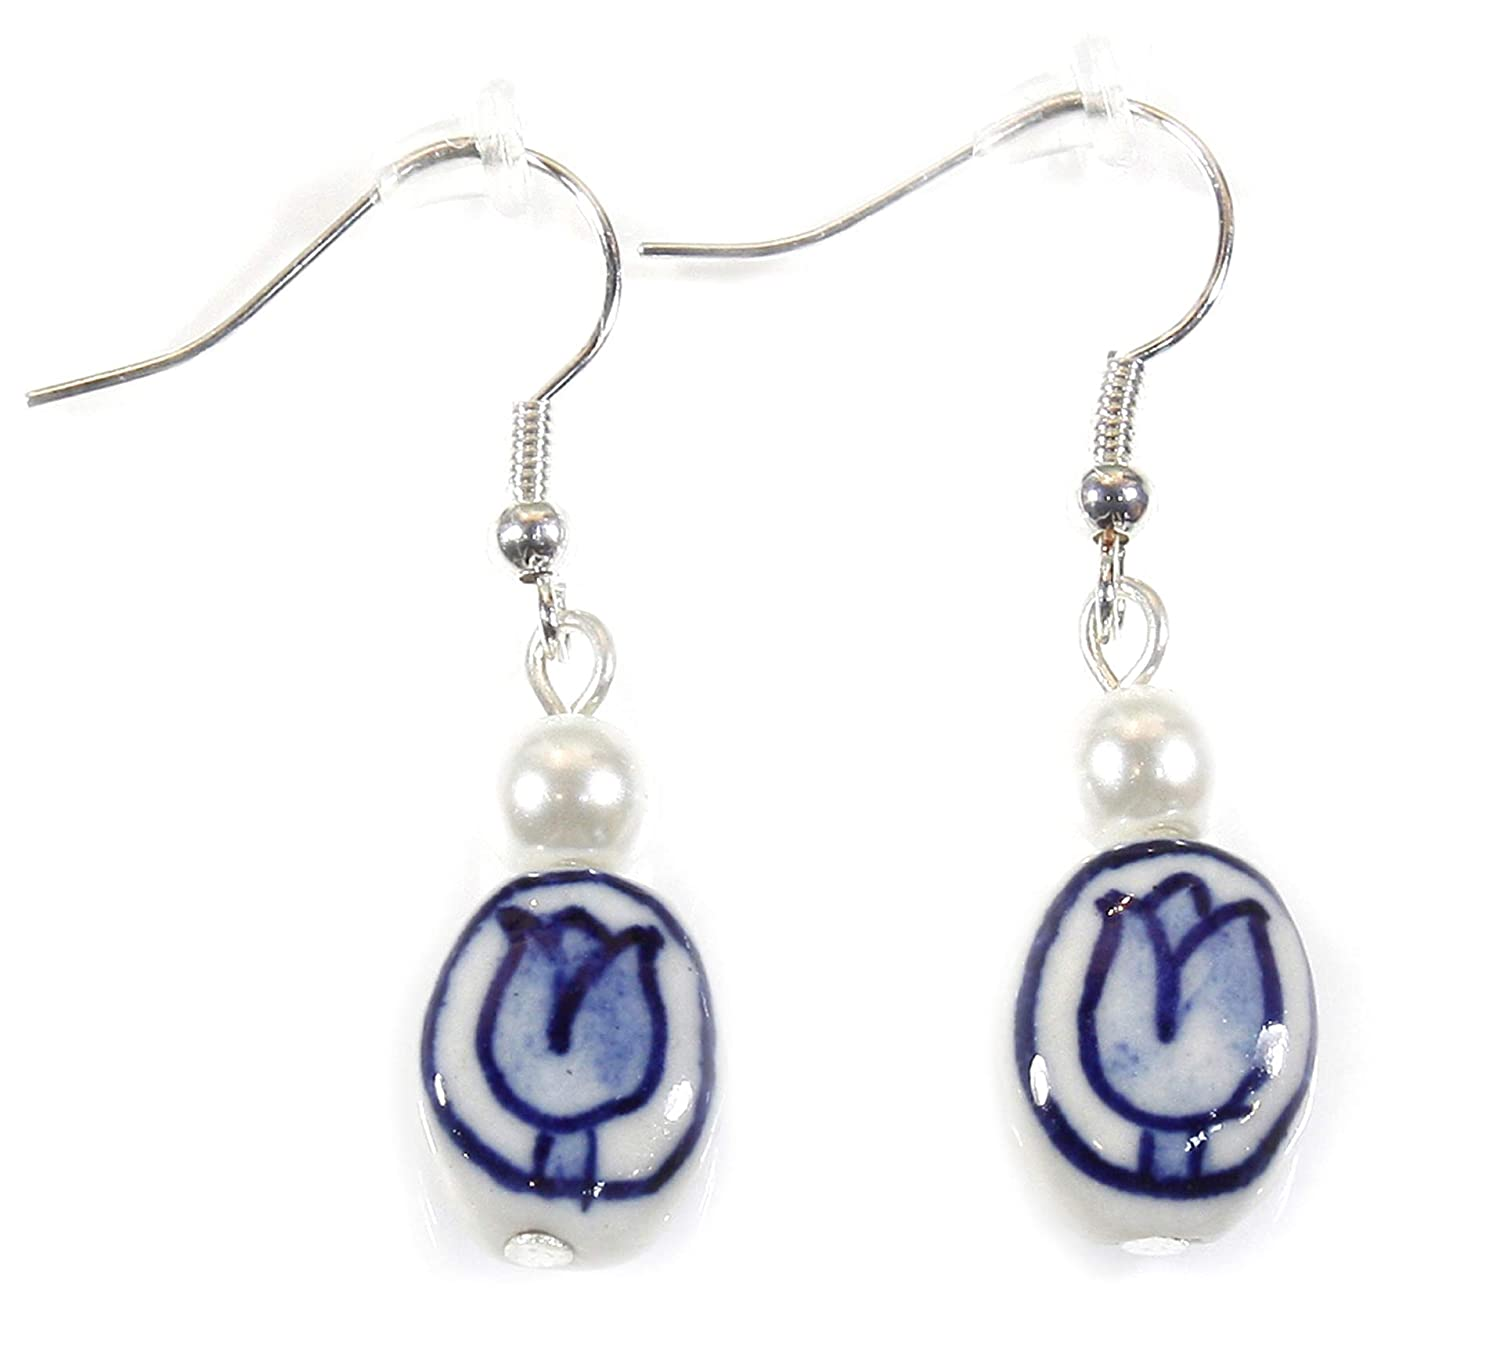 """Blue Delft"" Dutch Tulip Porcelain Earrings, 1.5 Inches"